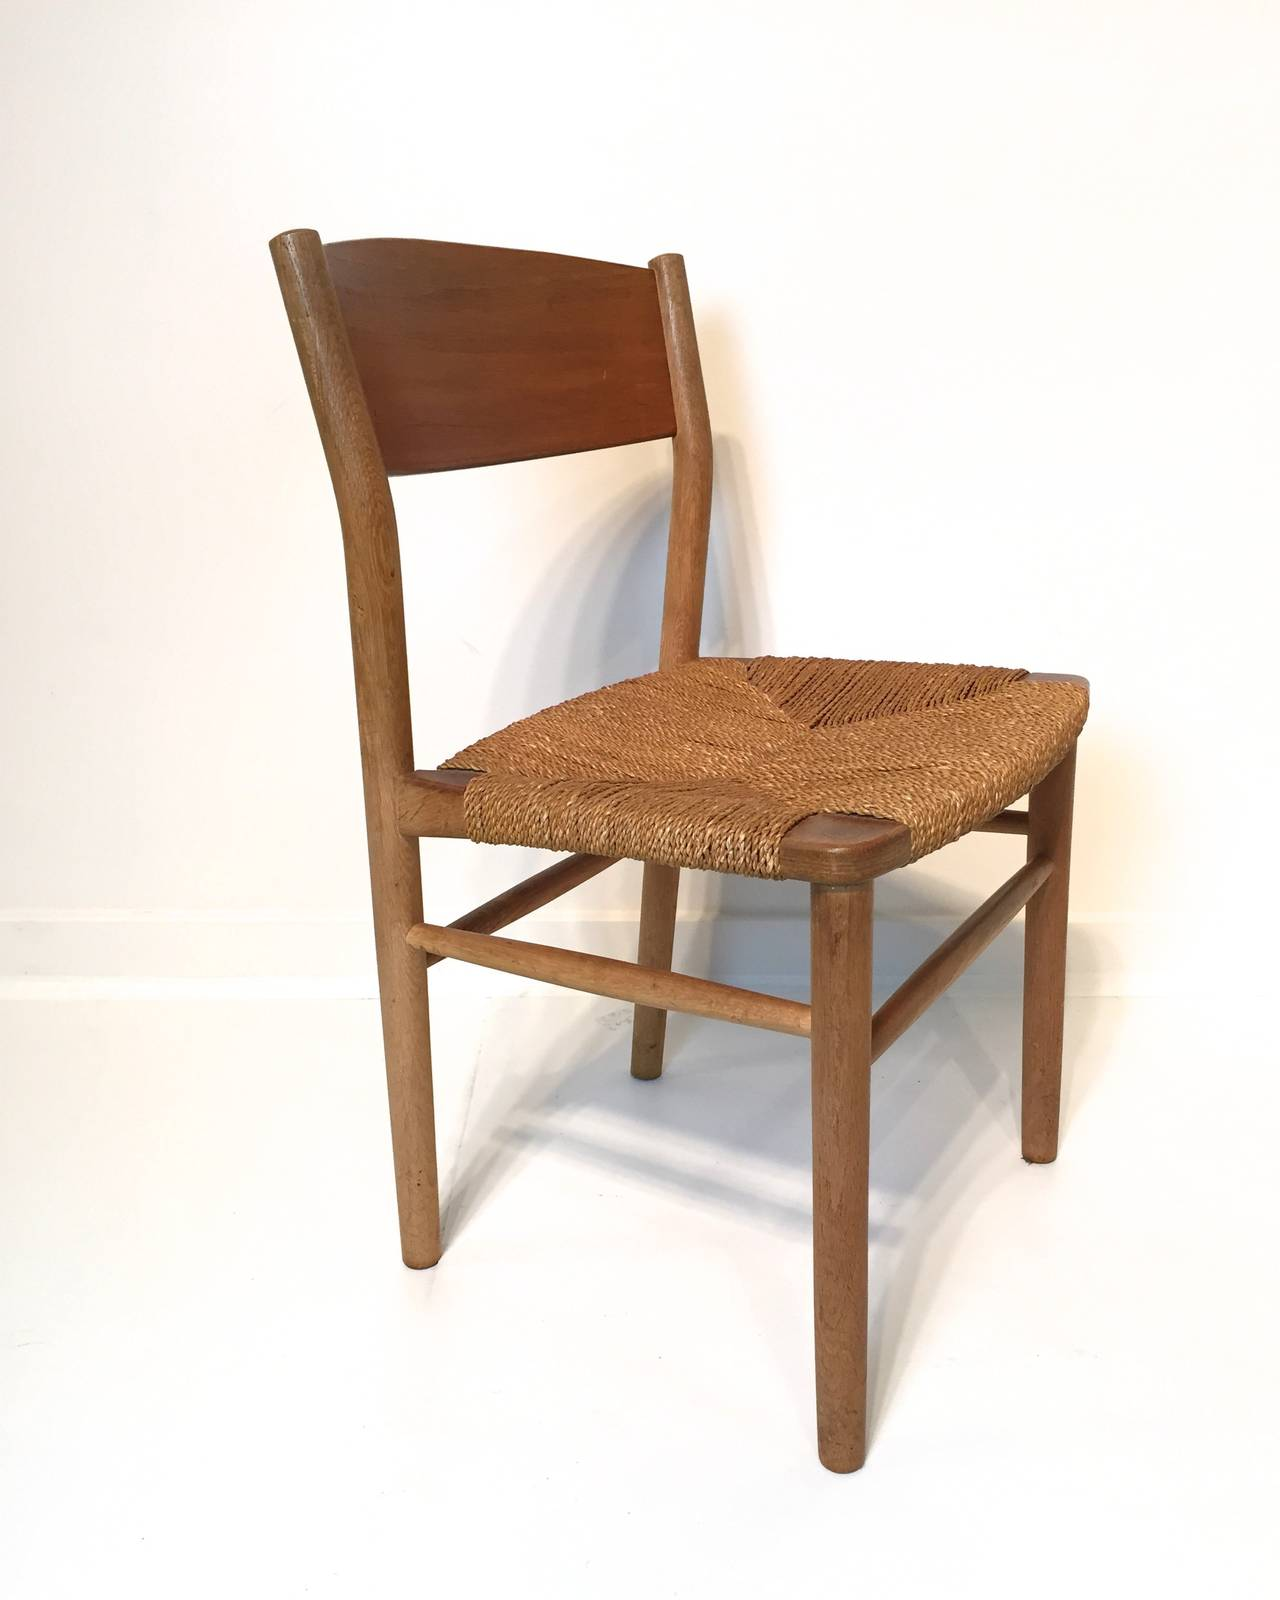 Seagrass Dining Chairs Borge Mogensen Seagrass Dining Chair At 1stdibs